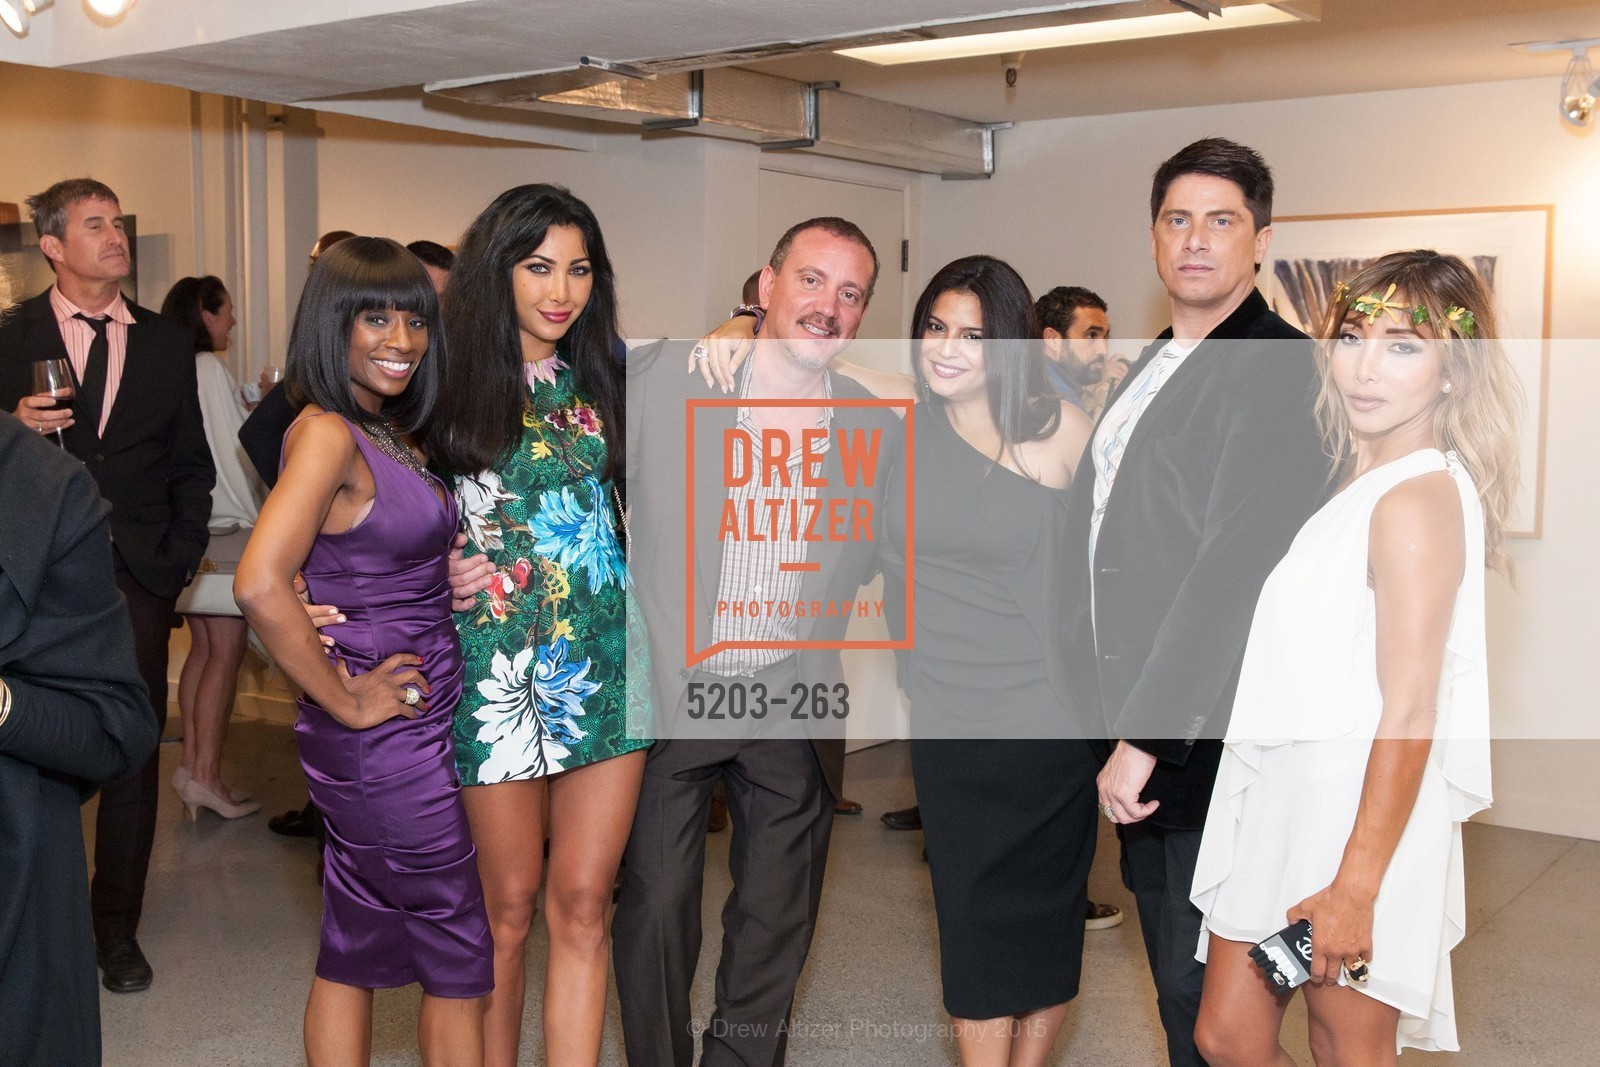 Pernella Sommerville, Paraneh, Gene Kristul, Monaz Mehta, Aubrey Brewster, Karen Tamblyn, Drever Family Foundation Presents The 2015 Hotbed Benefit, Private, August 22nd, 2015,Drew Altizer, Drew Altizer Photography, full-service agency, private events, San Francisco photographer, photographer california